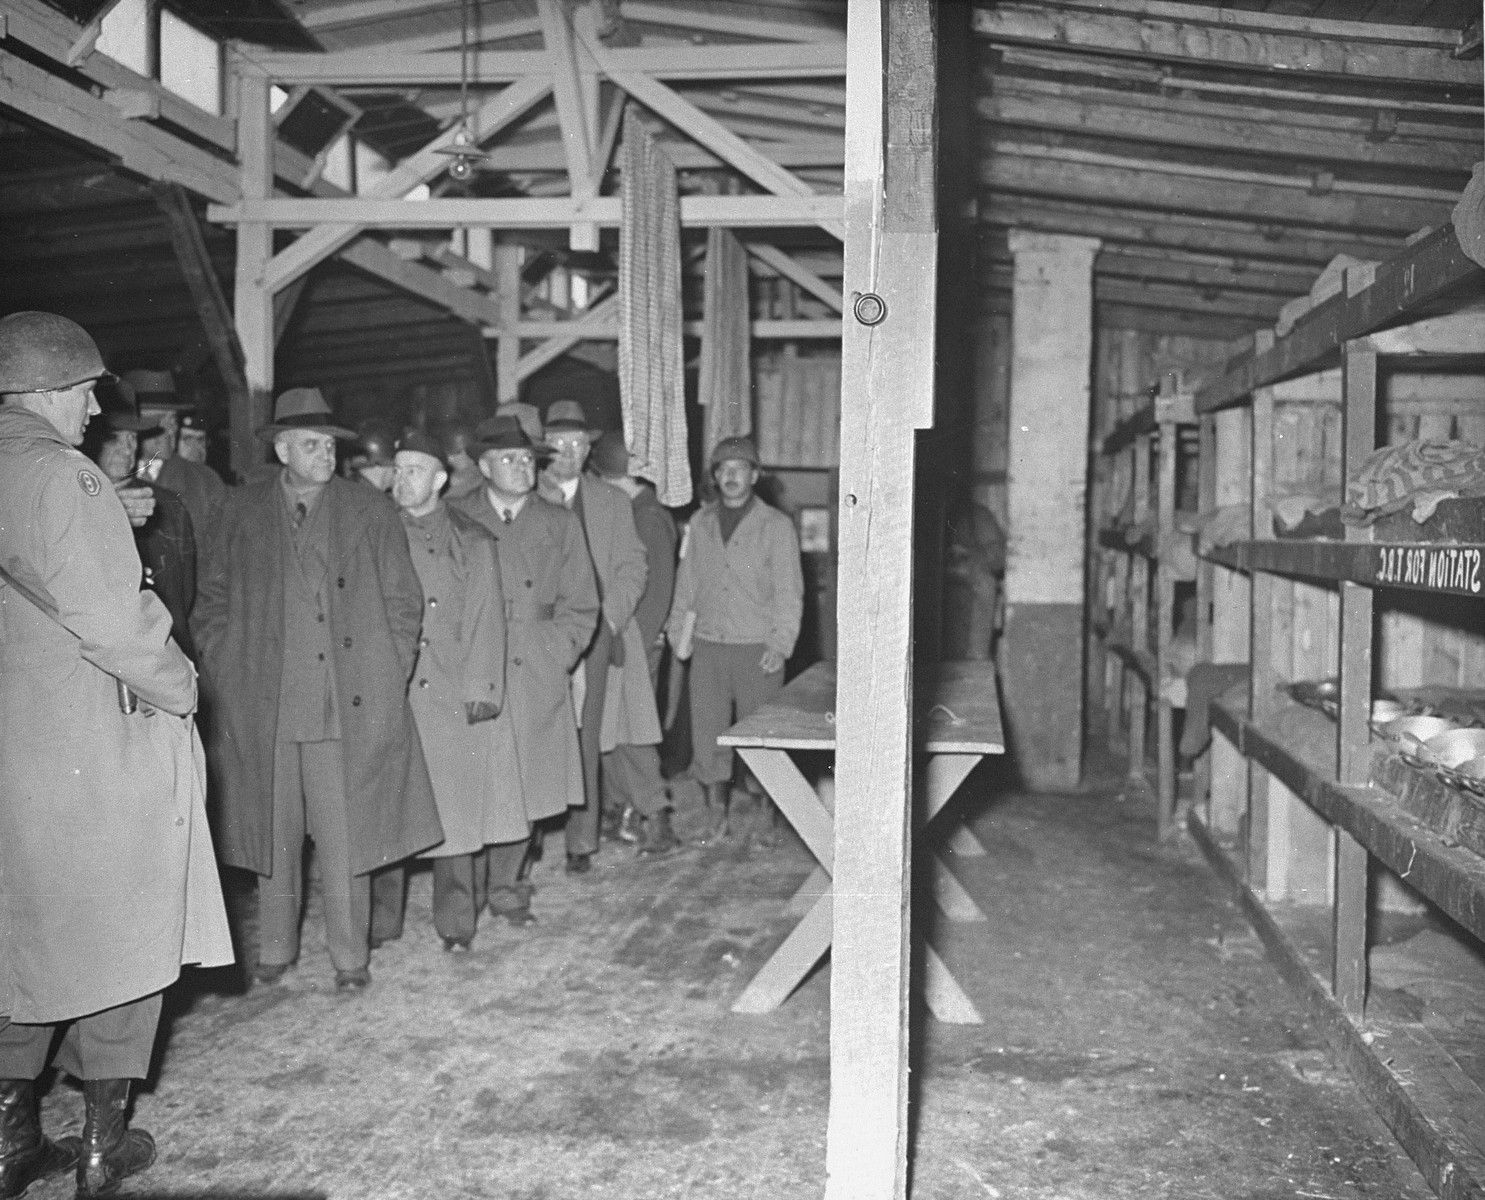 Members of a U.S. Congressional committee investigating Nazi atrocities walk through a prisoner barracks in the newly liberated Buchenwald concentration camp.